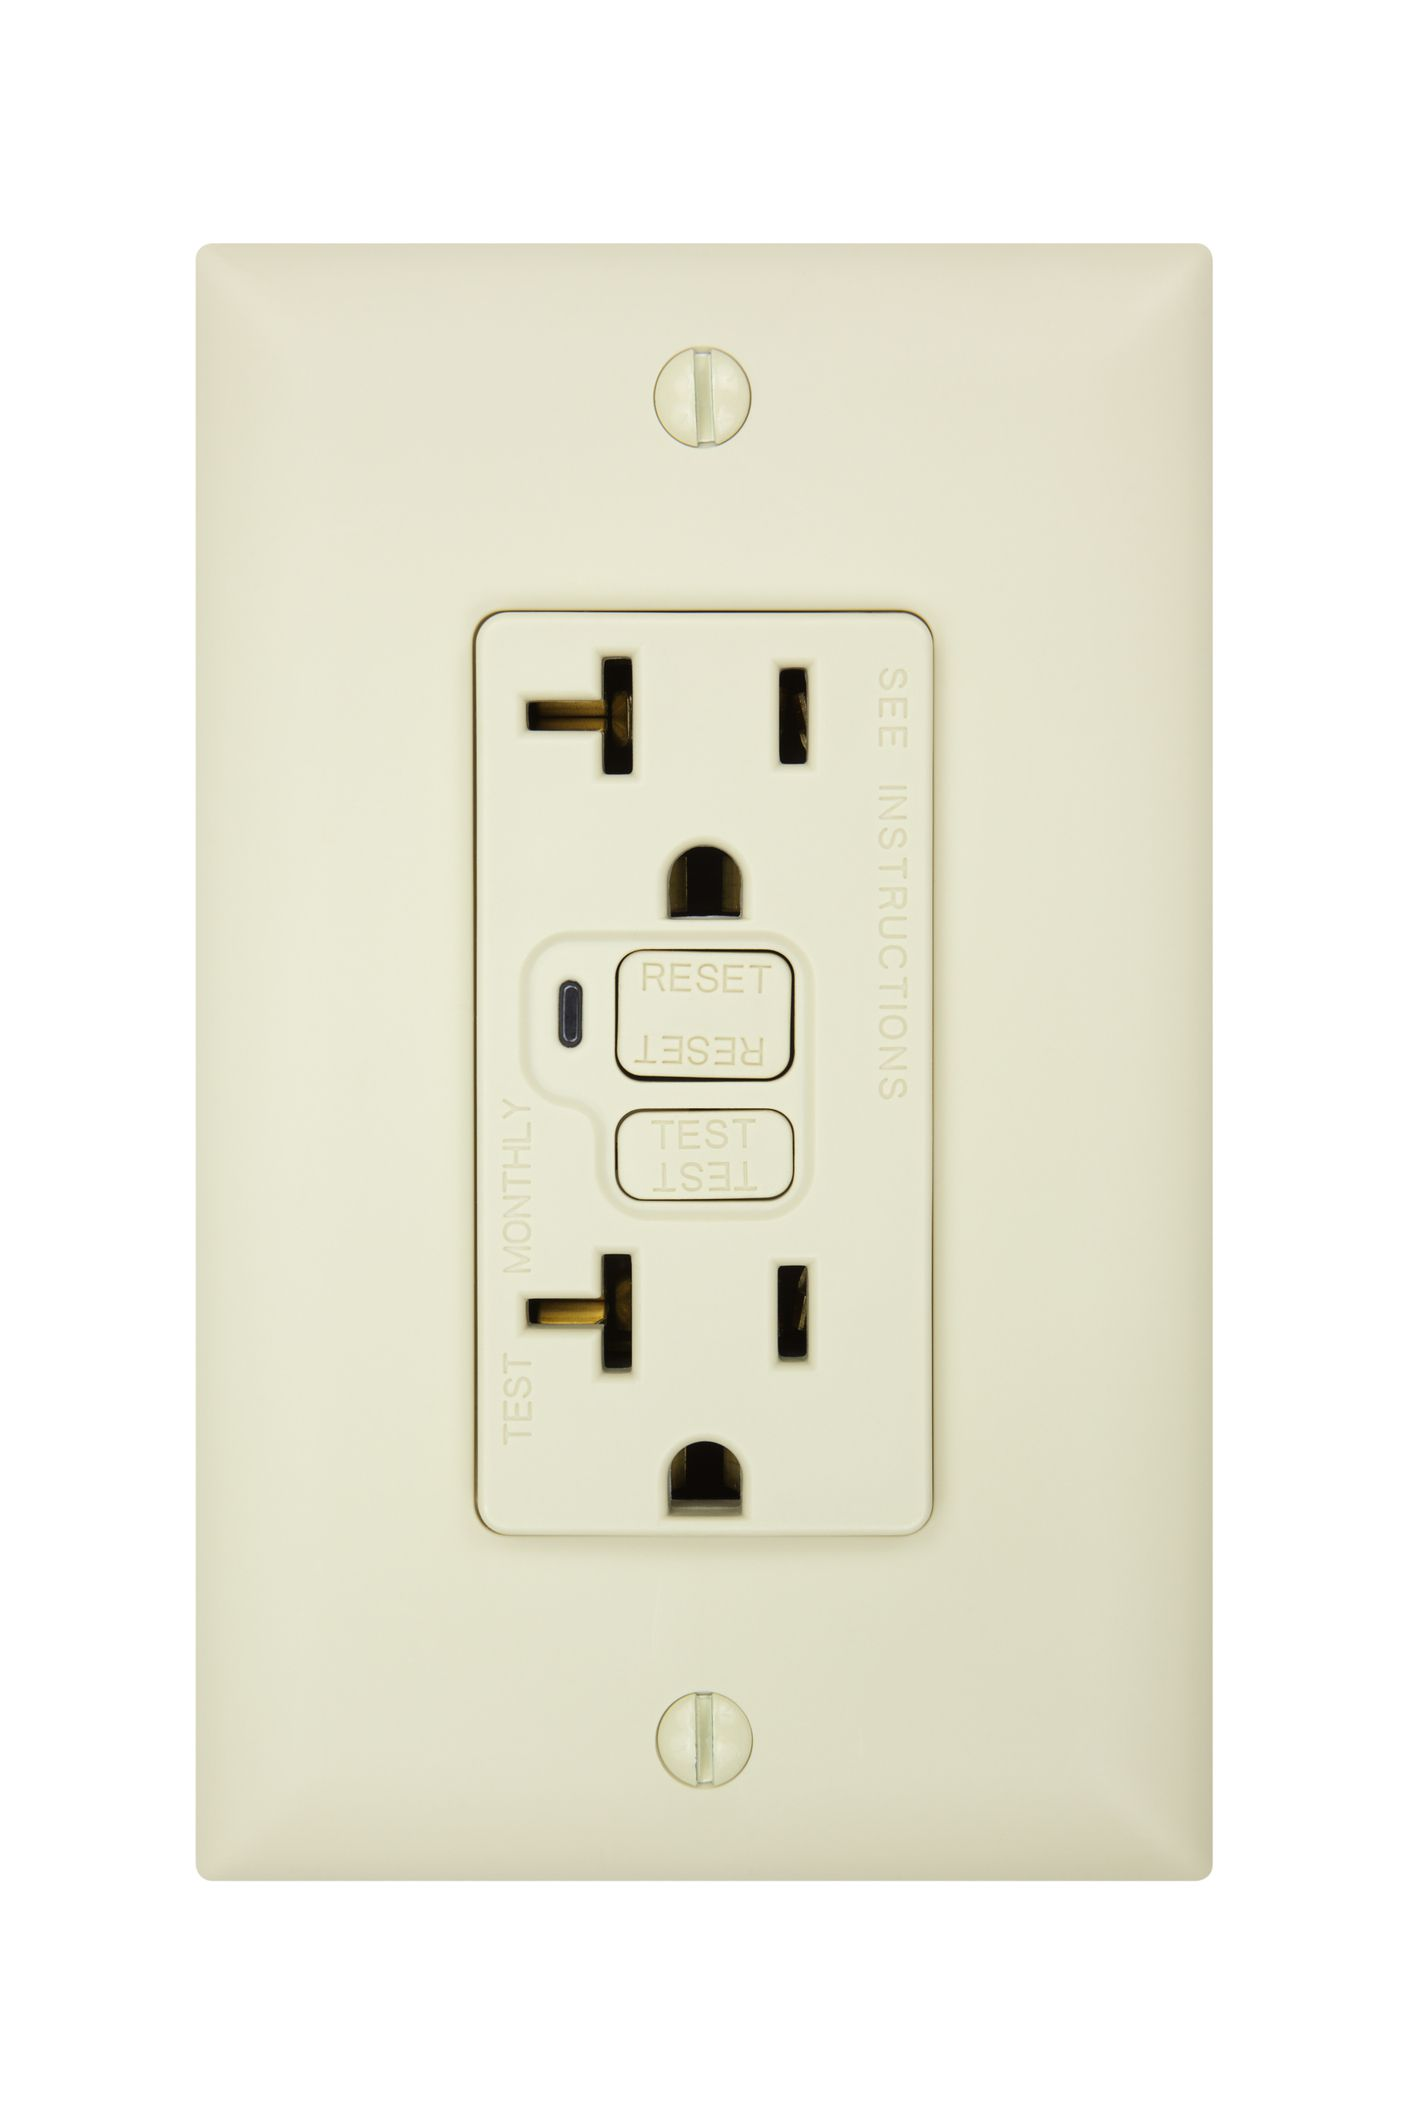 Testing Ground Fault Circuit Interrupters